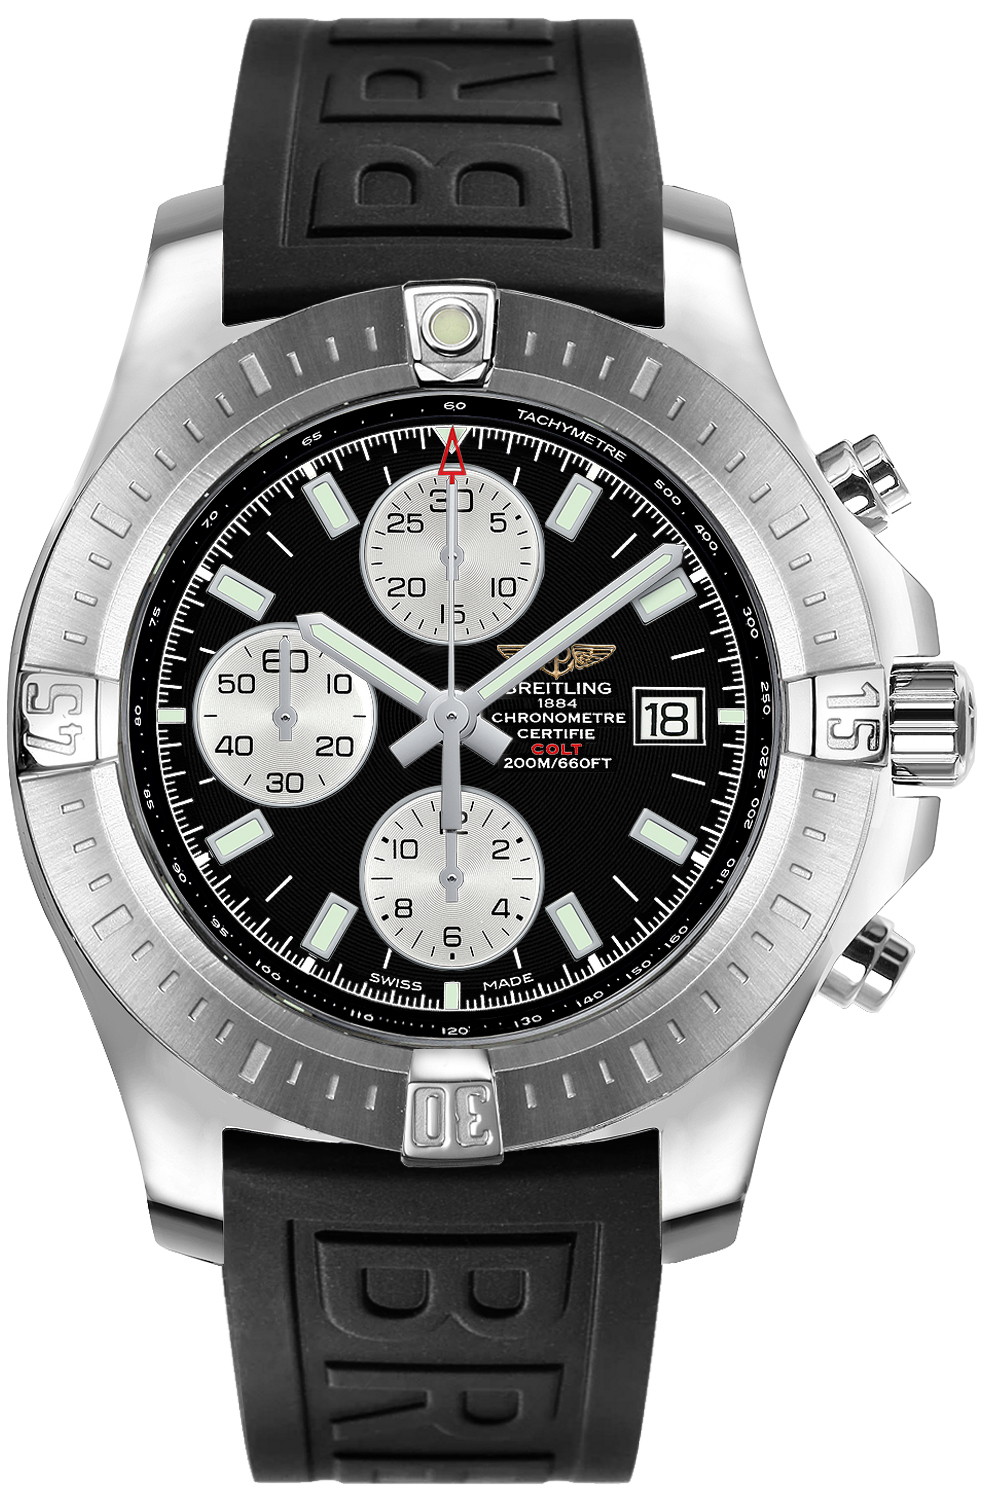 Breitling_Colt_Chronograph_Automatic_Mens_Sport_Watch_A1338811BD83153S